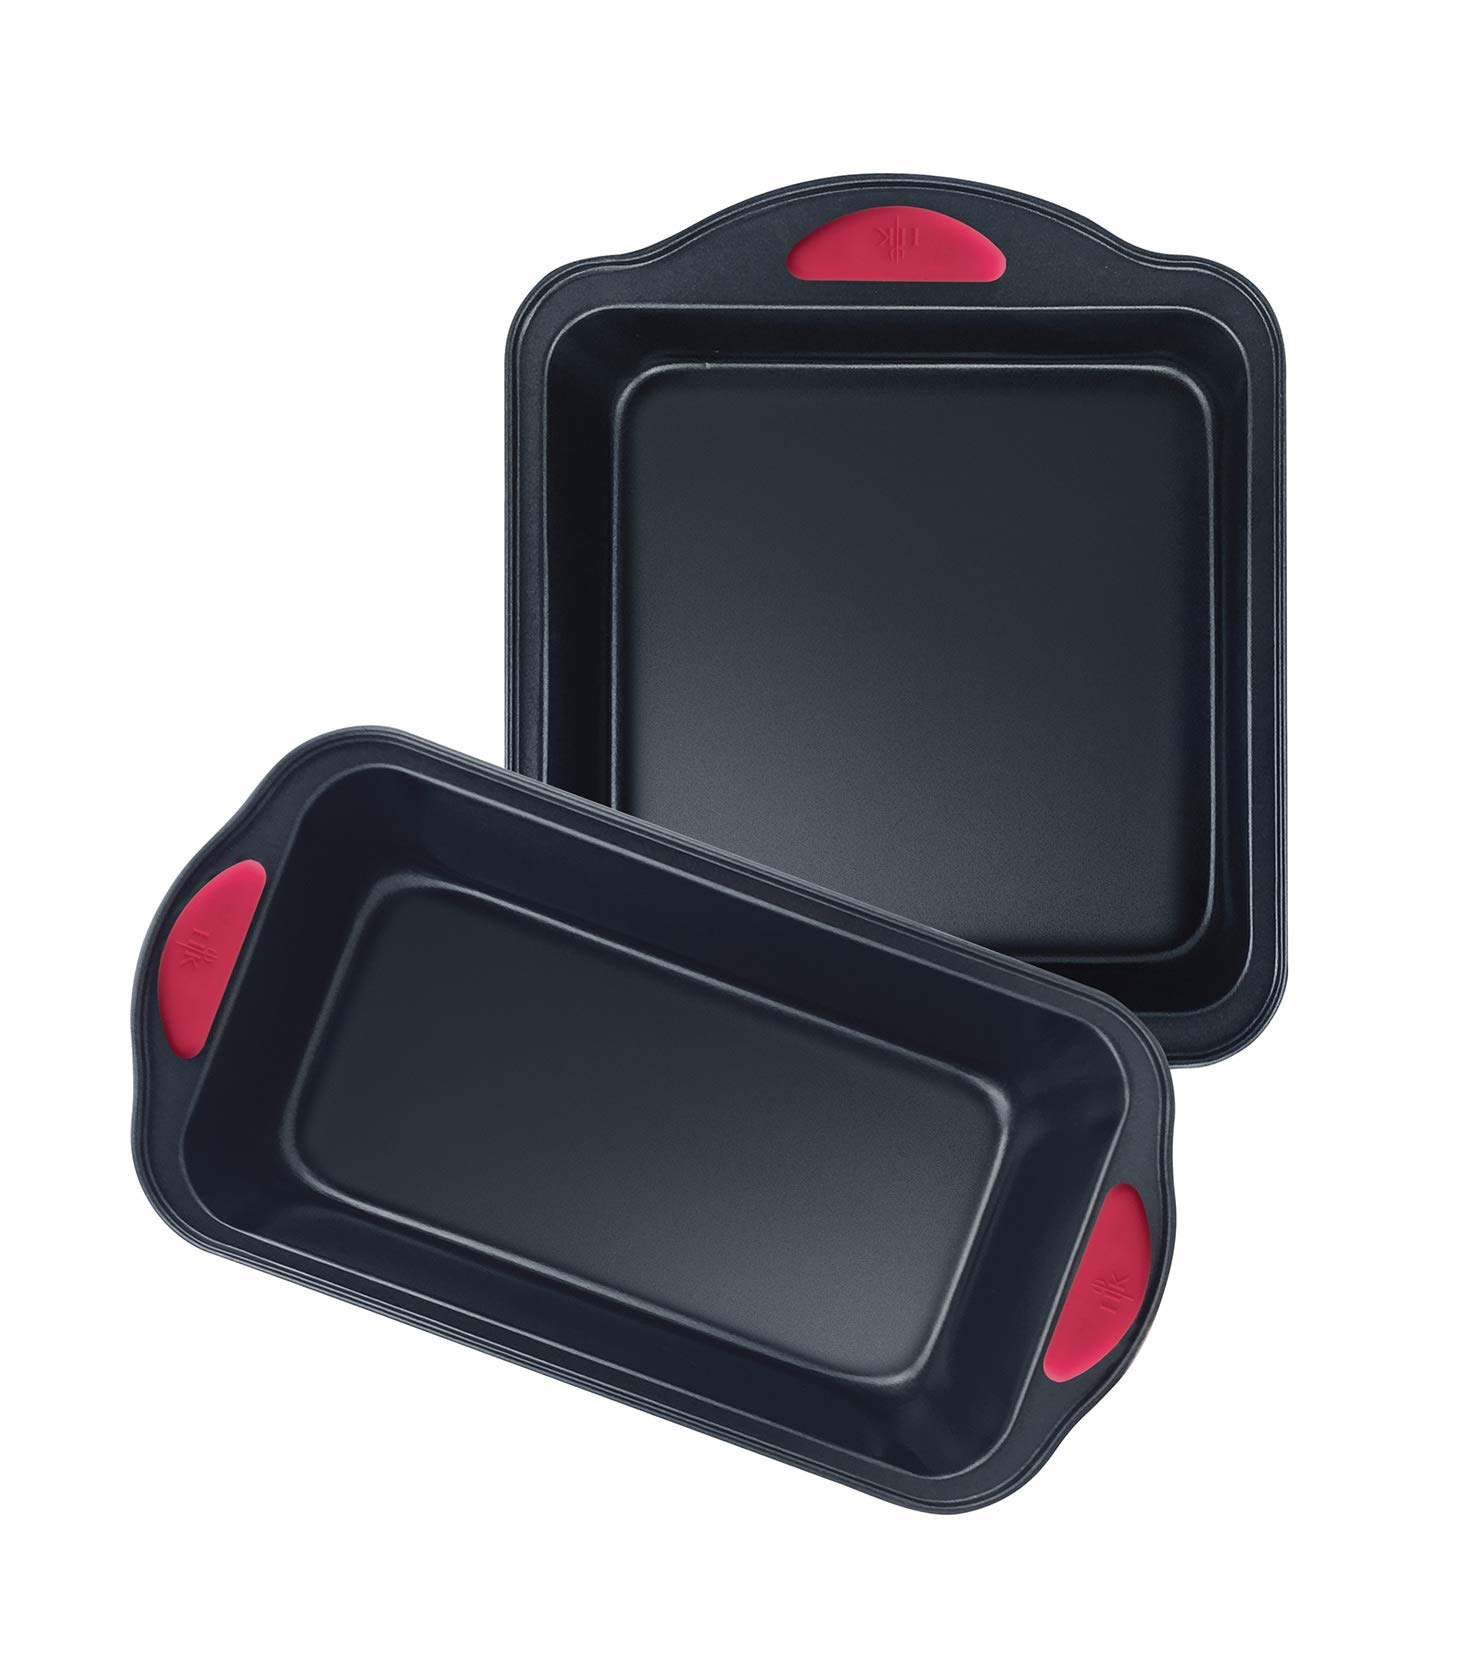 Hell's Kitchen Nonstick 8 Piece Ultimate Bakeware Set - Baking Pans and Baking Sheet in Non Stick with Red Silicone Grips - Bakeware Set includes Cookie, Cake, Muffin, Roasting and More by Hell's Kitchen (Image #8)